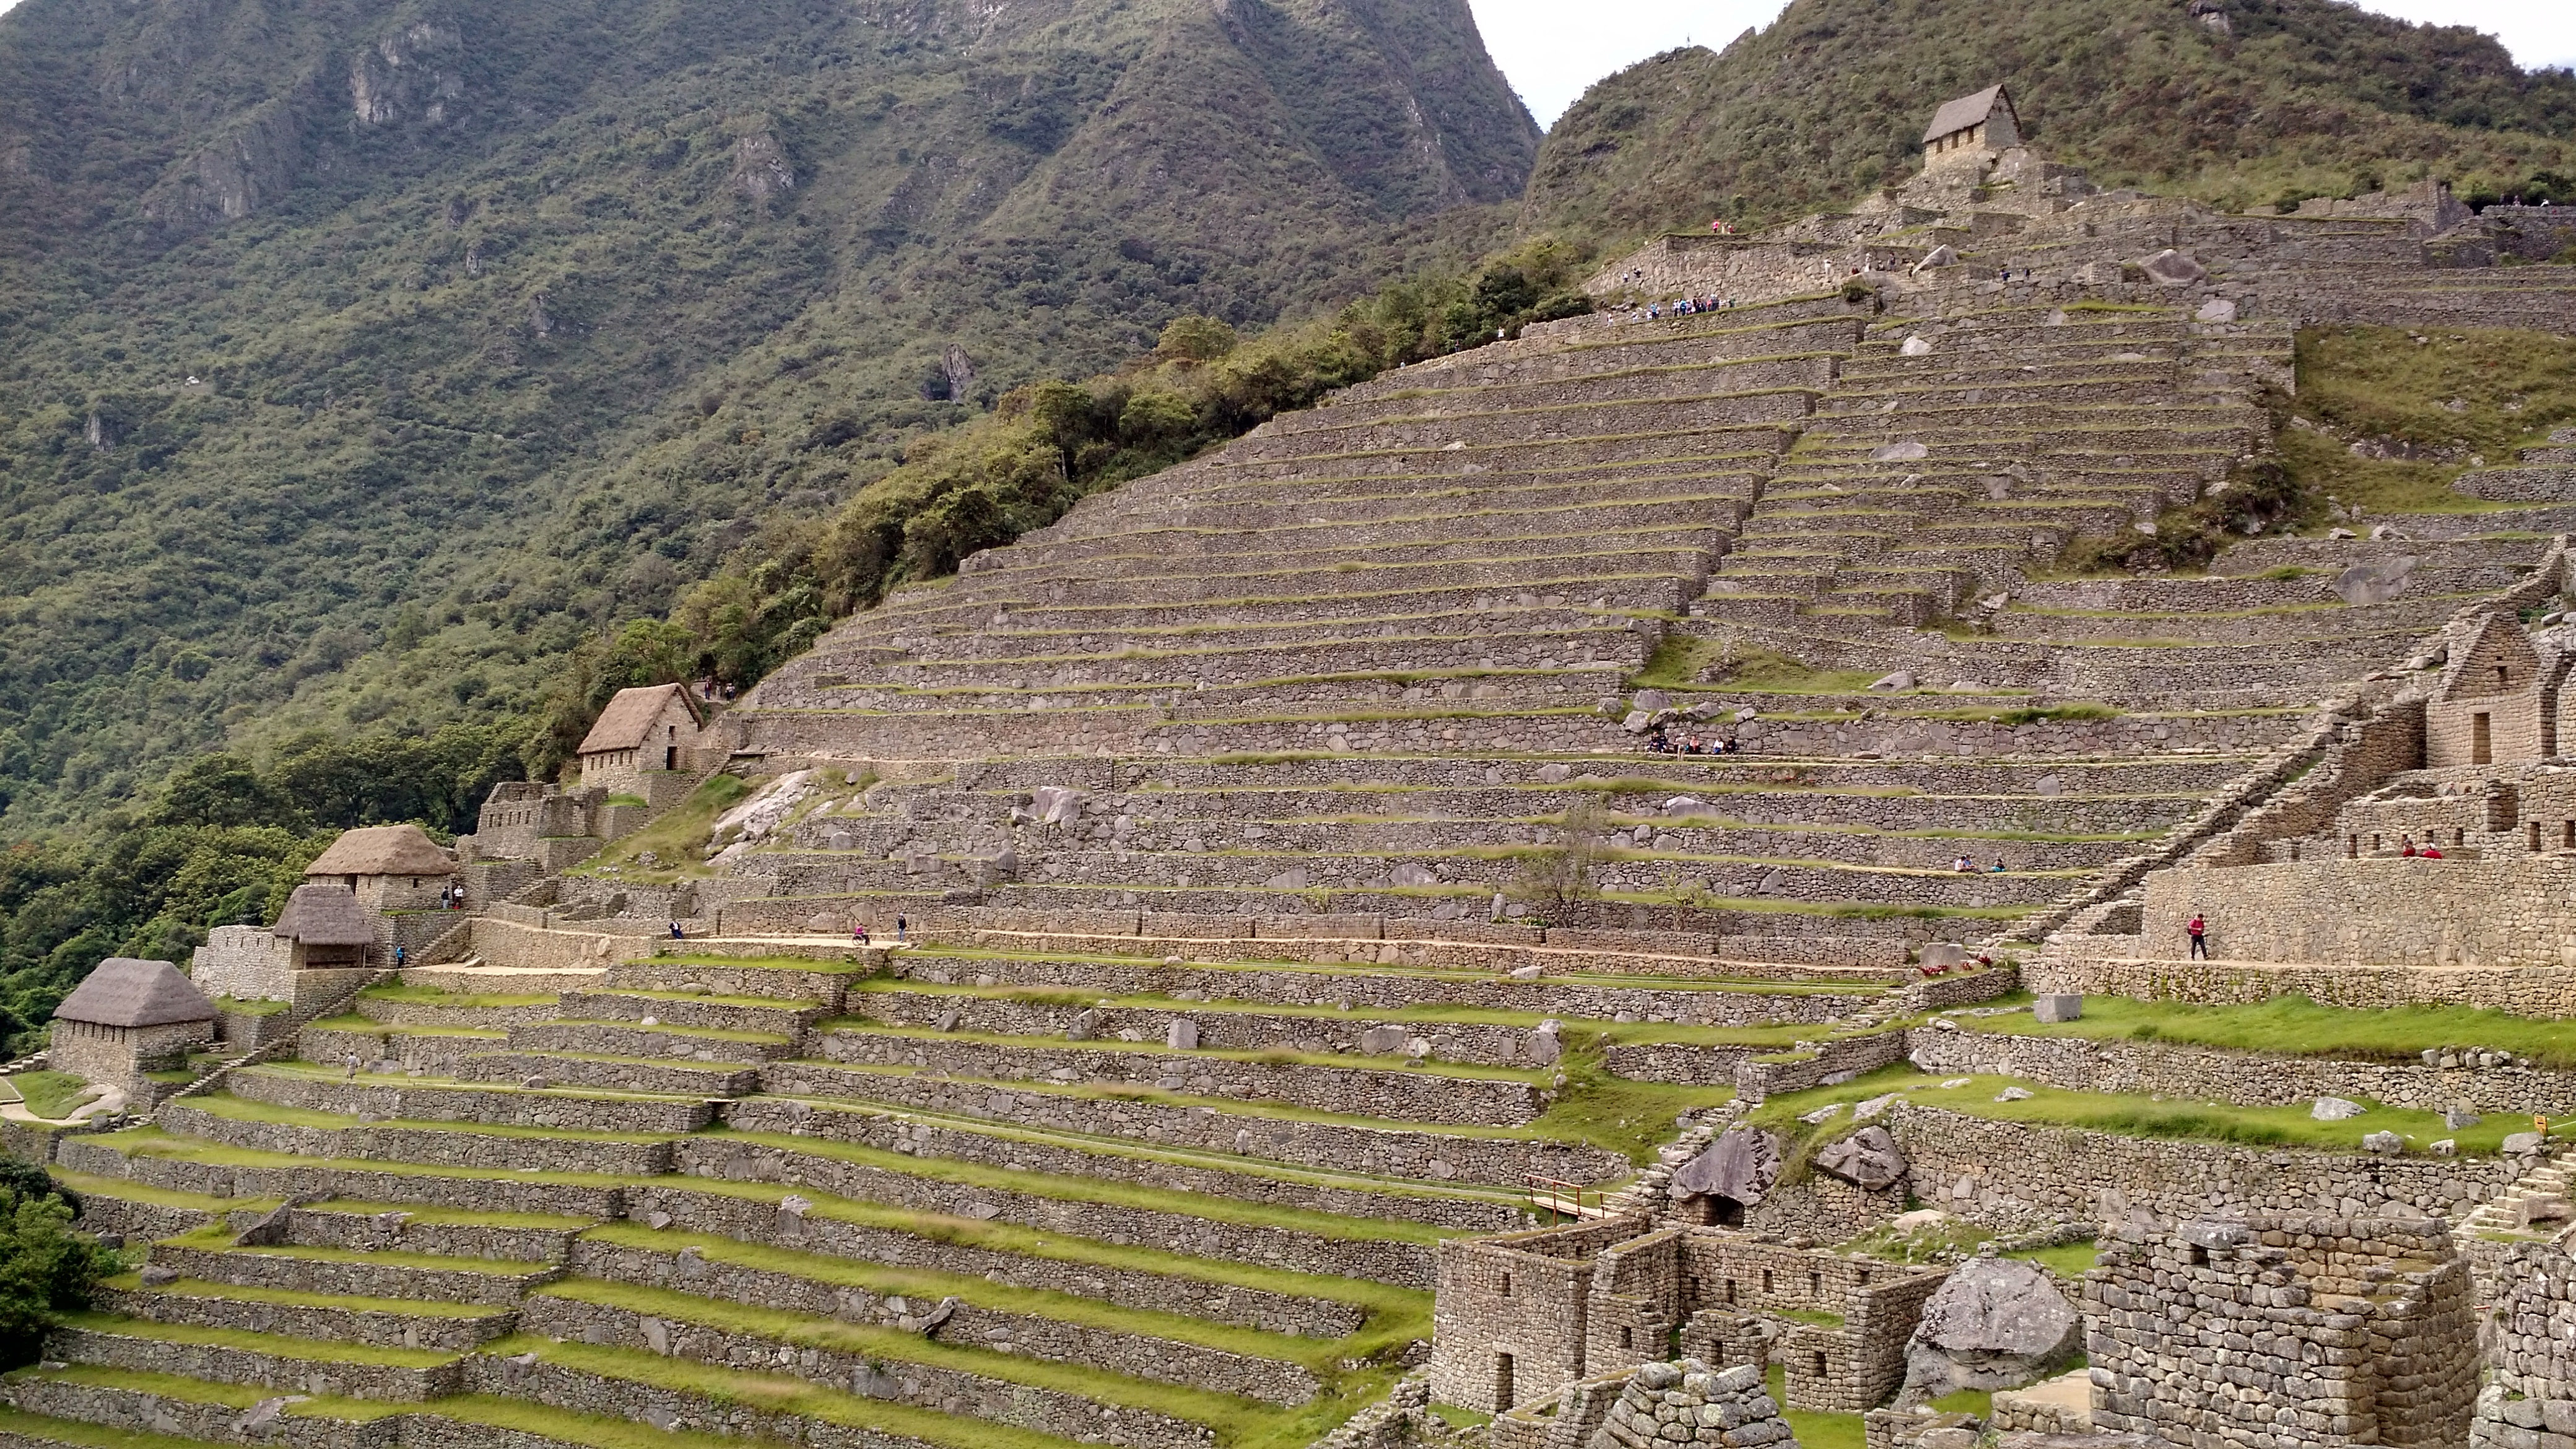 Free stock photo of terrace steps at machu picchu peru for Terrace steps